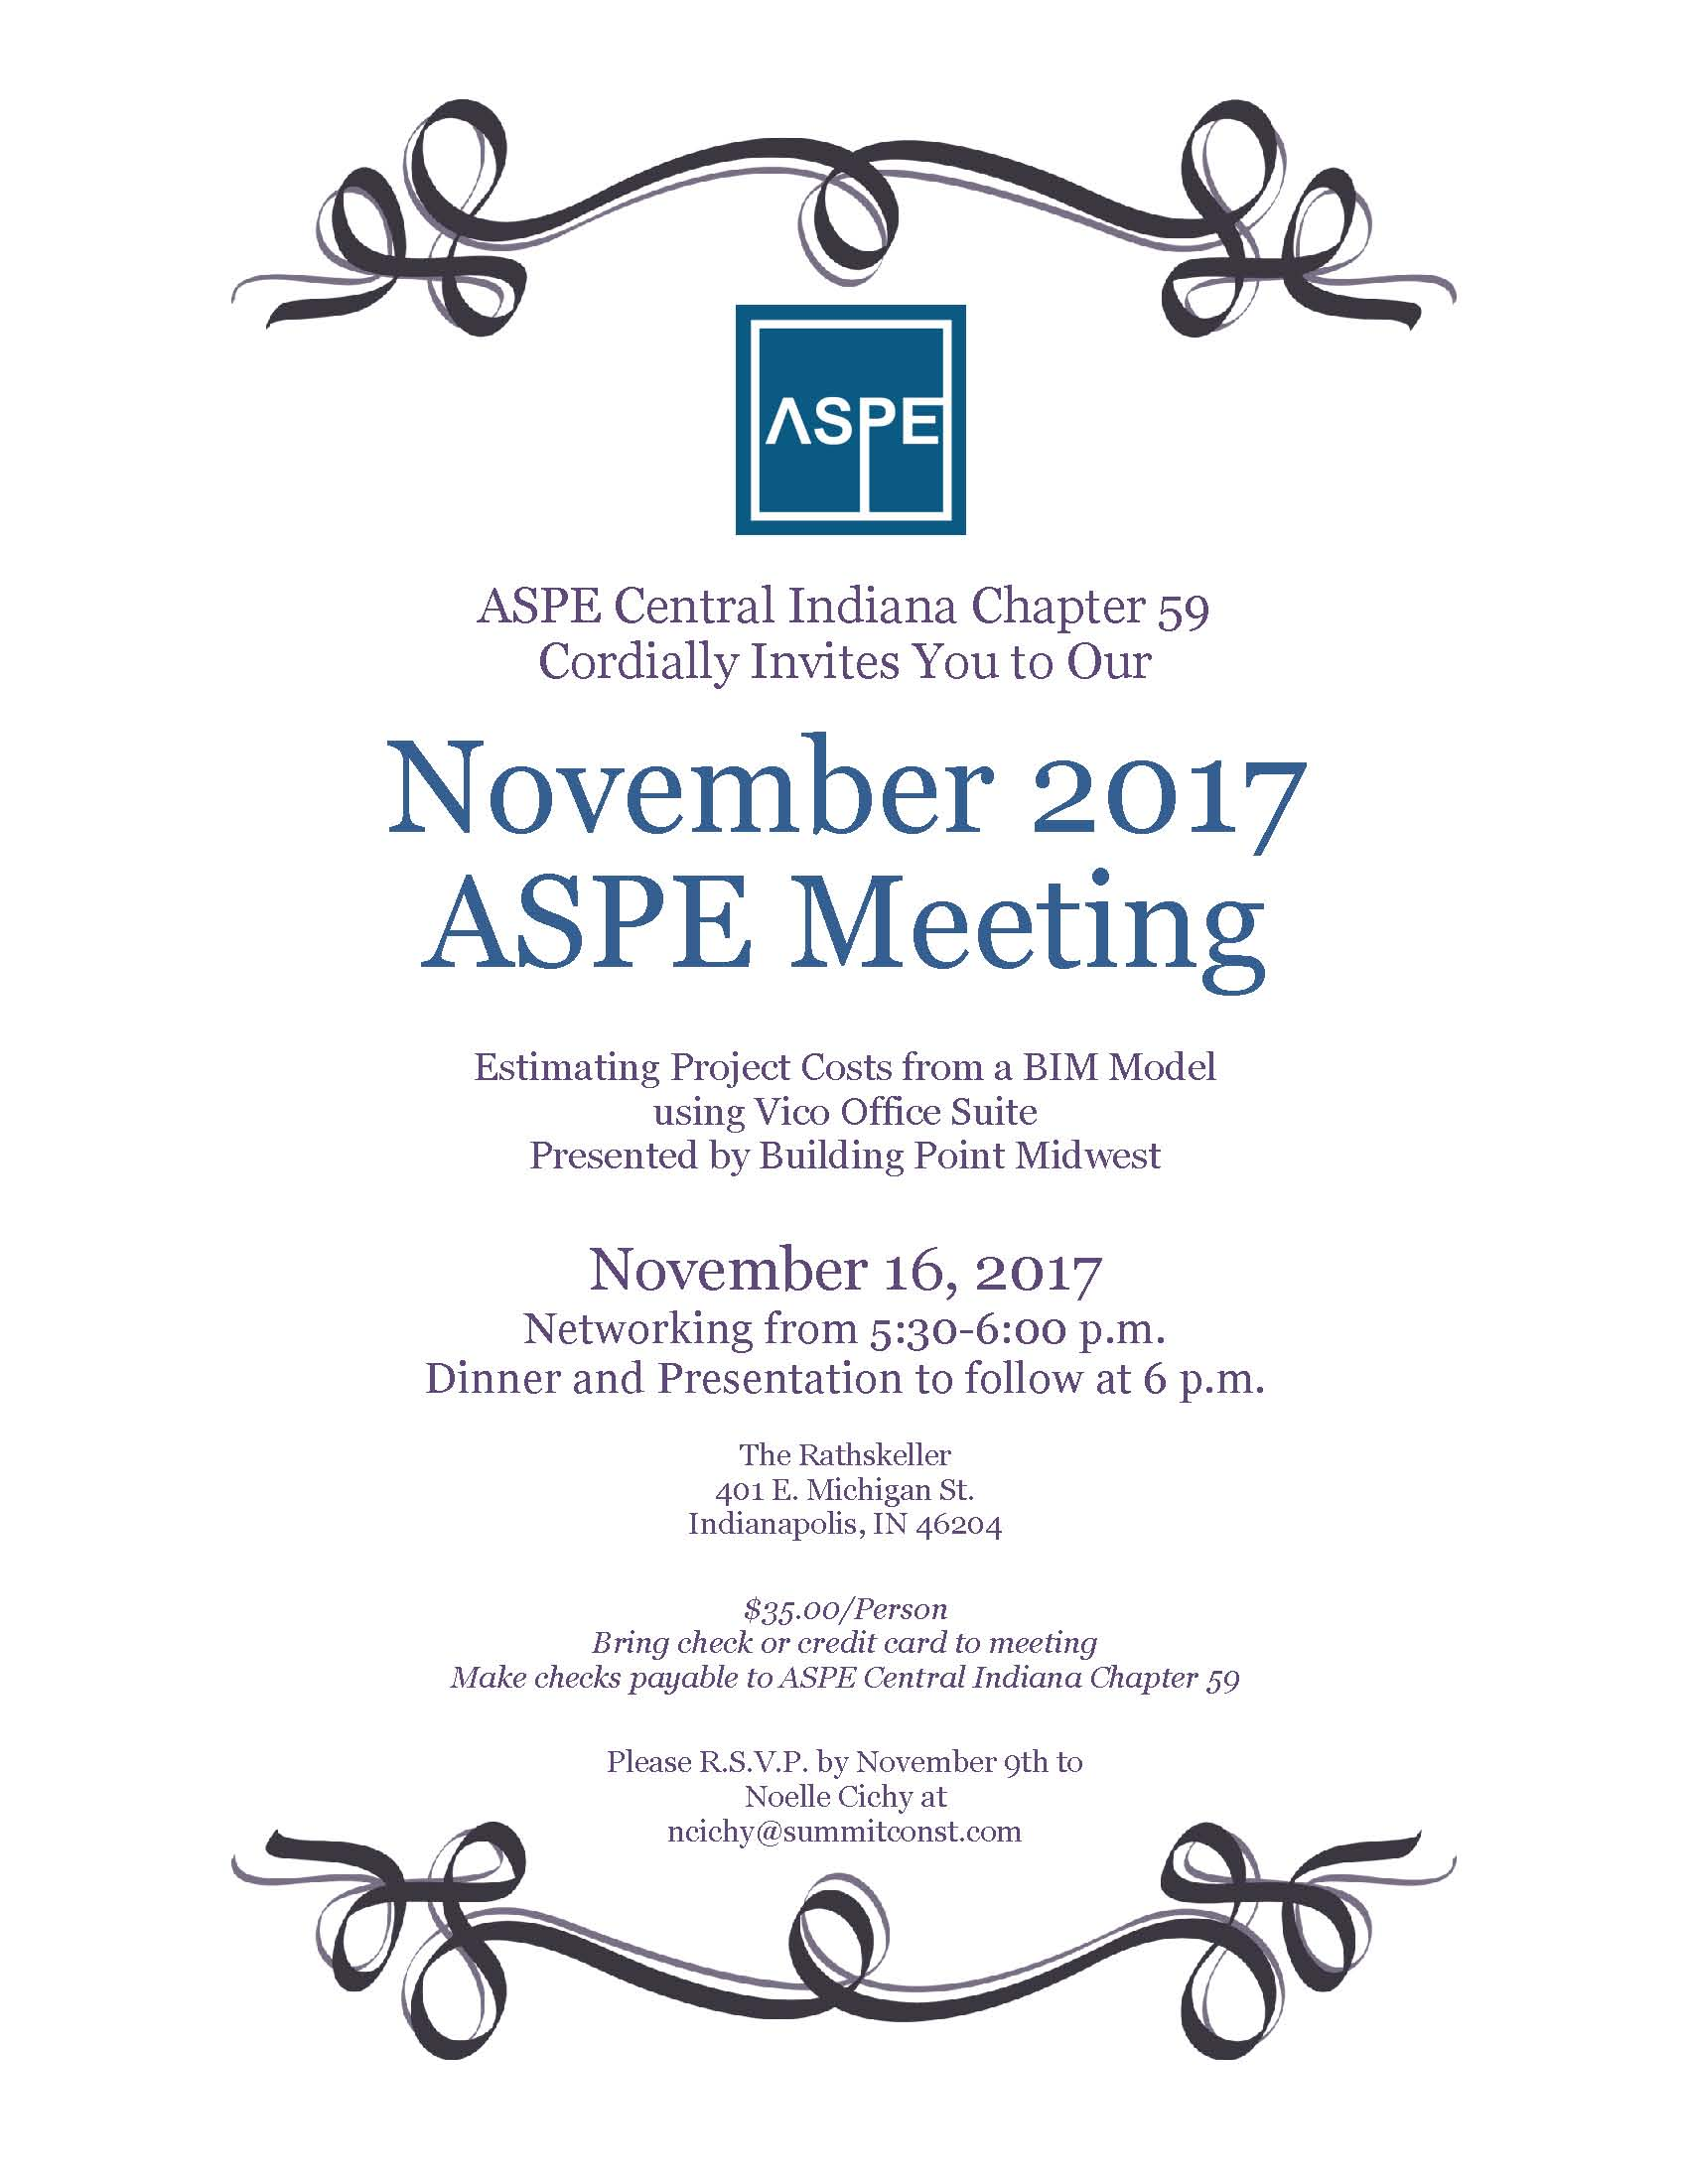 ASPE Central Indiana Chapter 59 November Meeting Invite